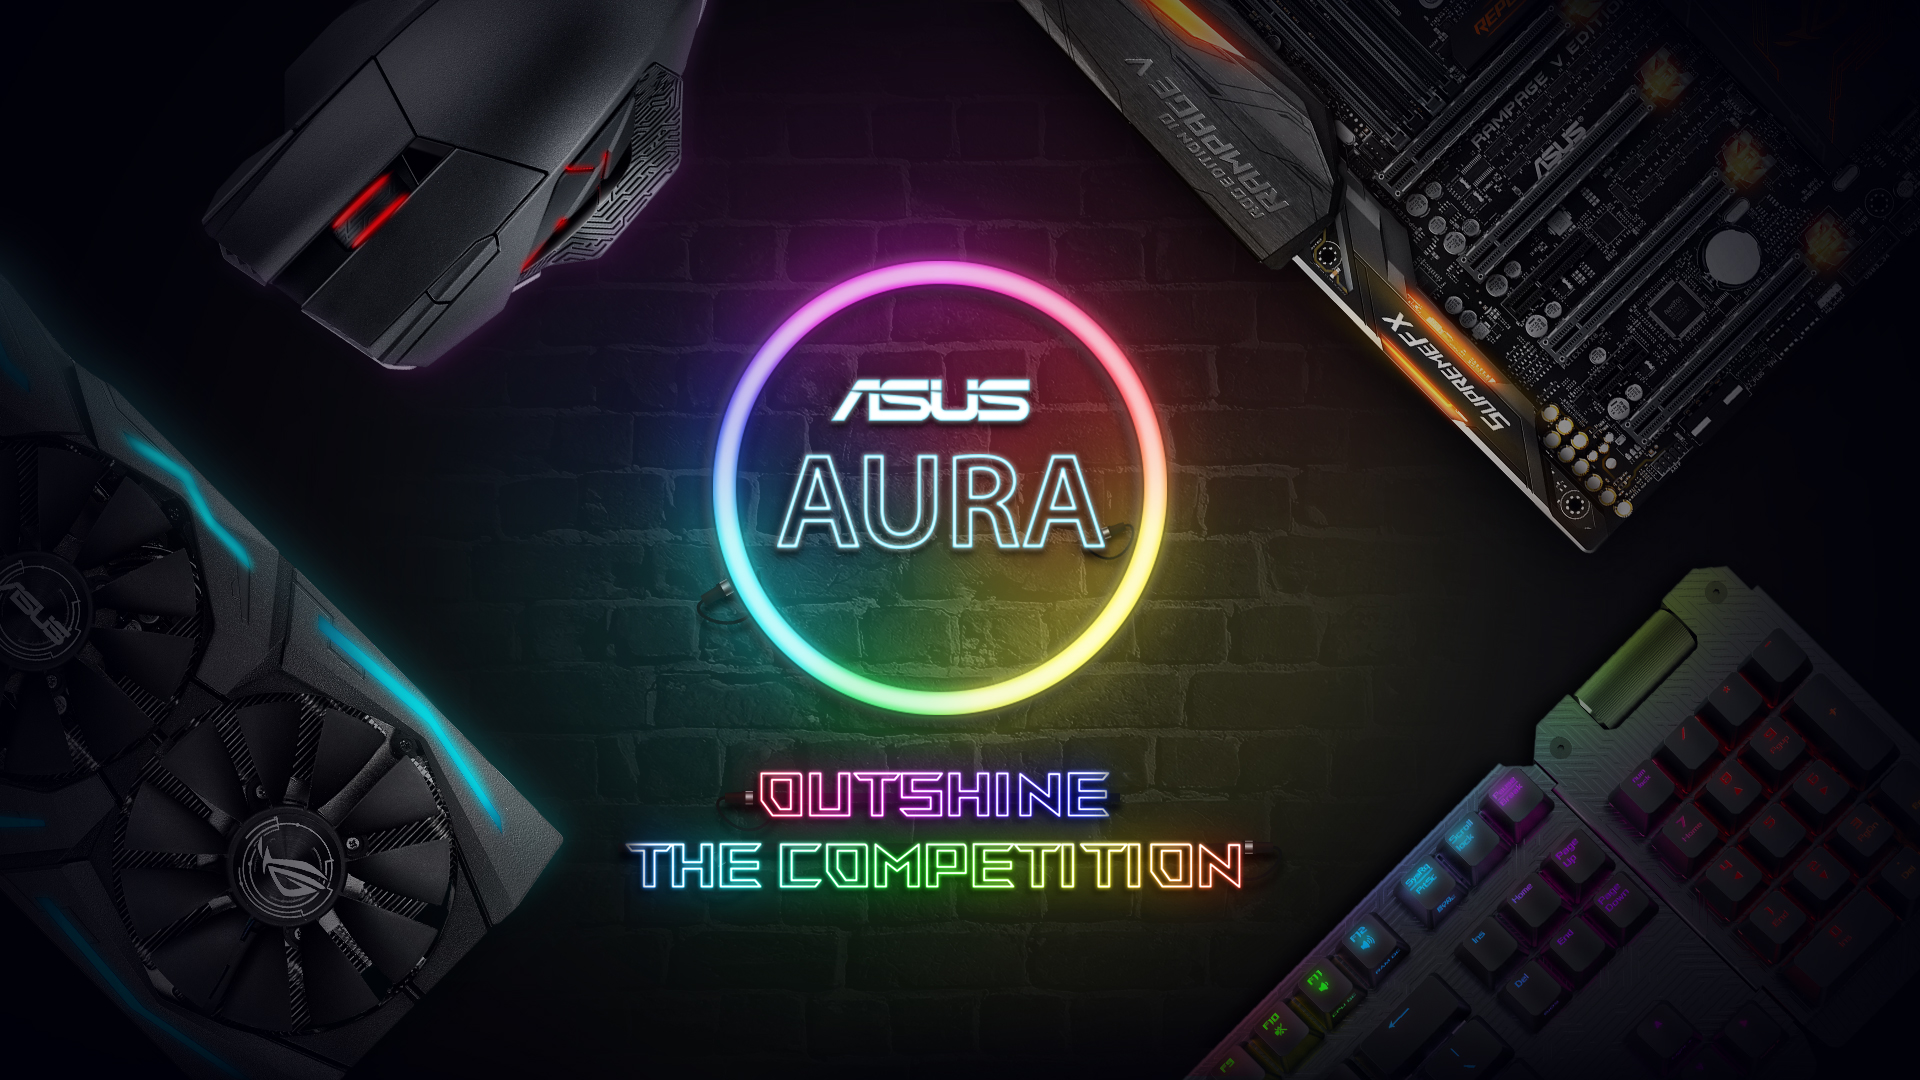 ASUS Aura: Outshine the Competition